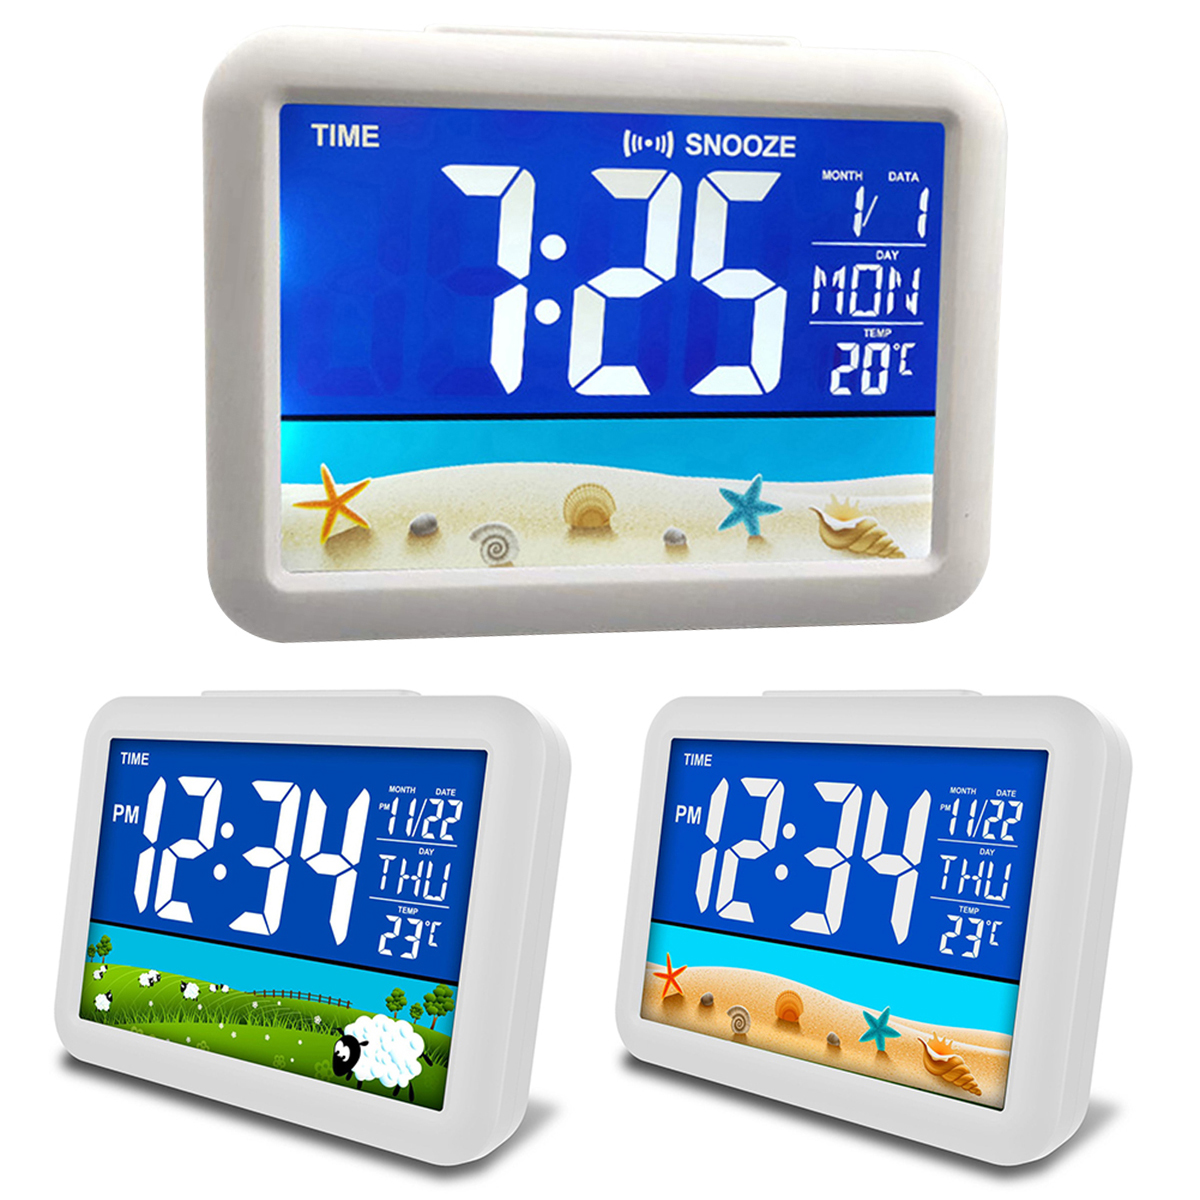 Temperature Alarm Clock Large Display For Home Office Travel Table Clock Snooze Electronic Kids Clock LCD Color Screen Clock